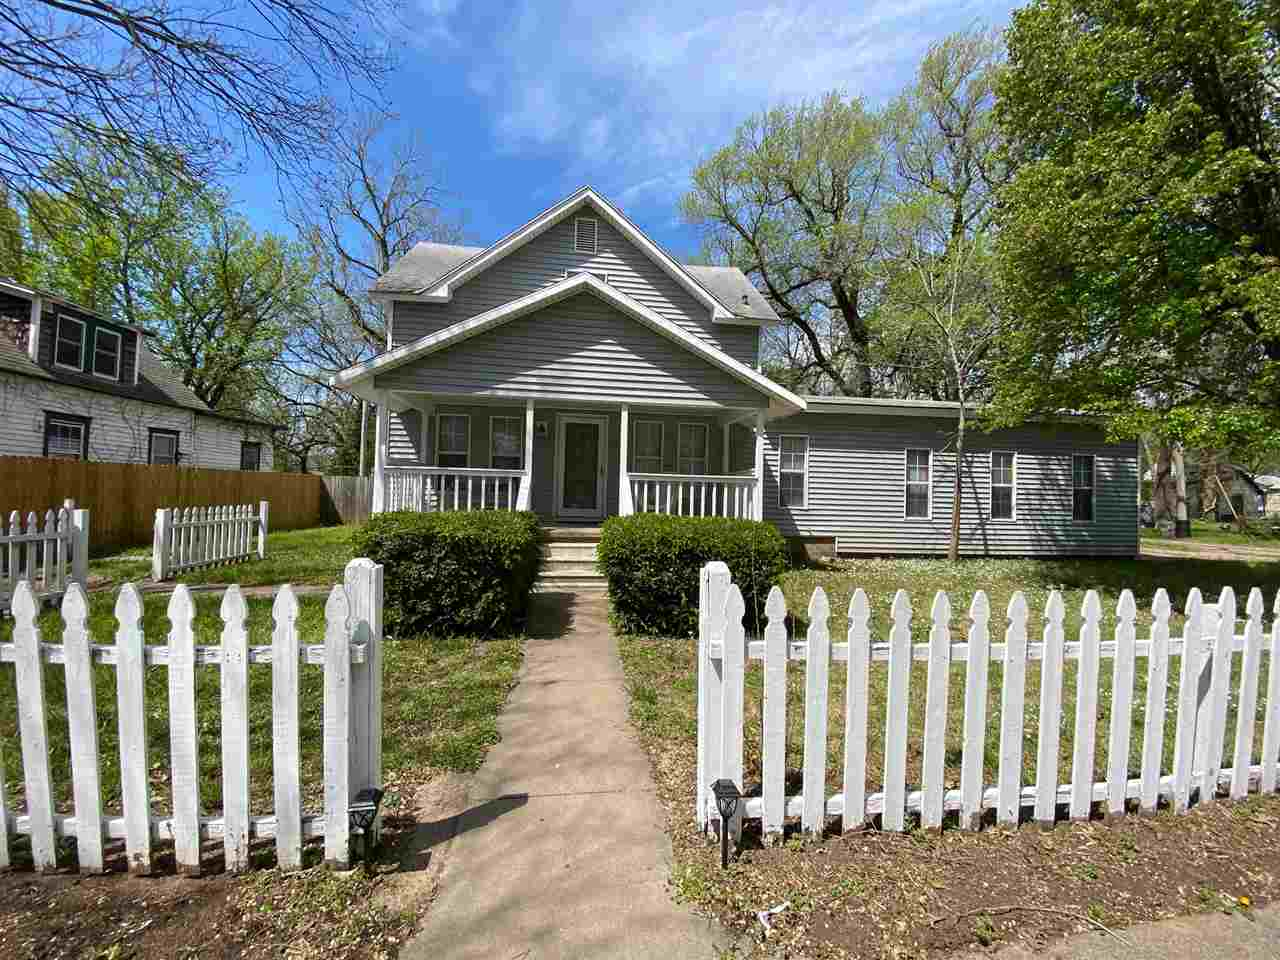 This is a find! Gorgeous two story with many recent updates including Brand New Roof make this a move in ready home! You will immediately notice the white picket fence, front porch and curb appeal when you arrive! Inside you will find freshly updated floors throughout and spacious and large living room! The kitchen is nicely updated and completed with all stainless appliances and a formal dining area! You will also find a huge master suite on the main complete with walk in closet, updated bathroom and plenty of extra space for a home office or workout area! On the upper level you have another bathroom and 3 large bedrooms! Outside you will find a nice large deck, huge backyard, and storage shed! The property has nice mature trees and the fencing offers plenty of backyard privacy! Don't miss out! Call the listing agent today to schedule a showing!